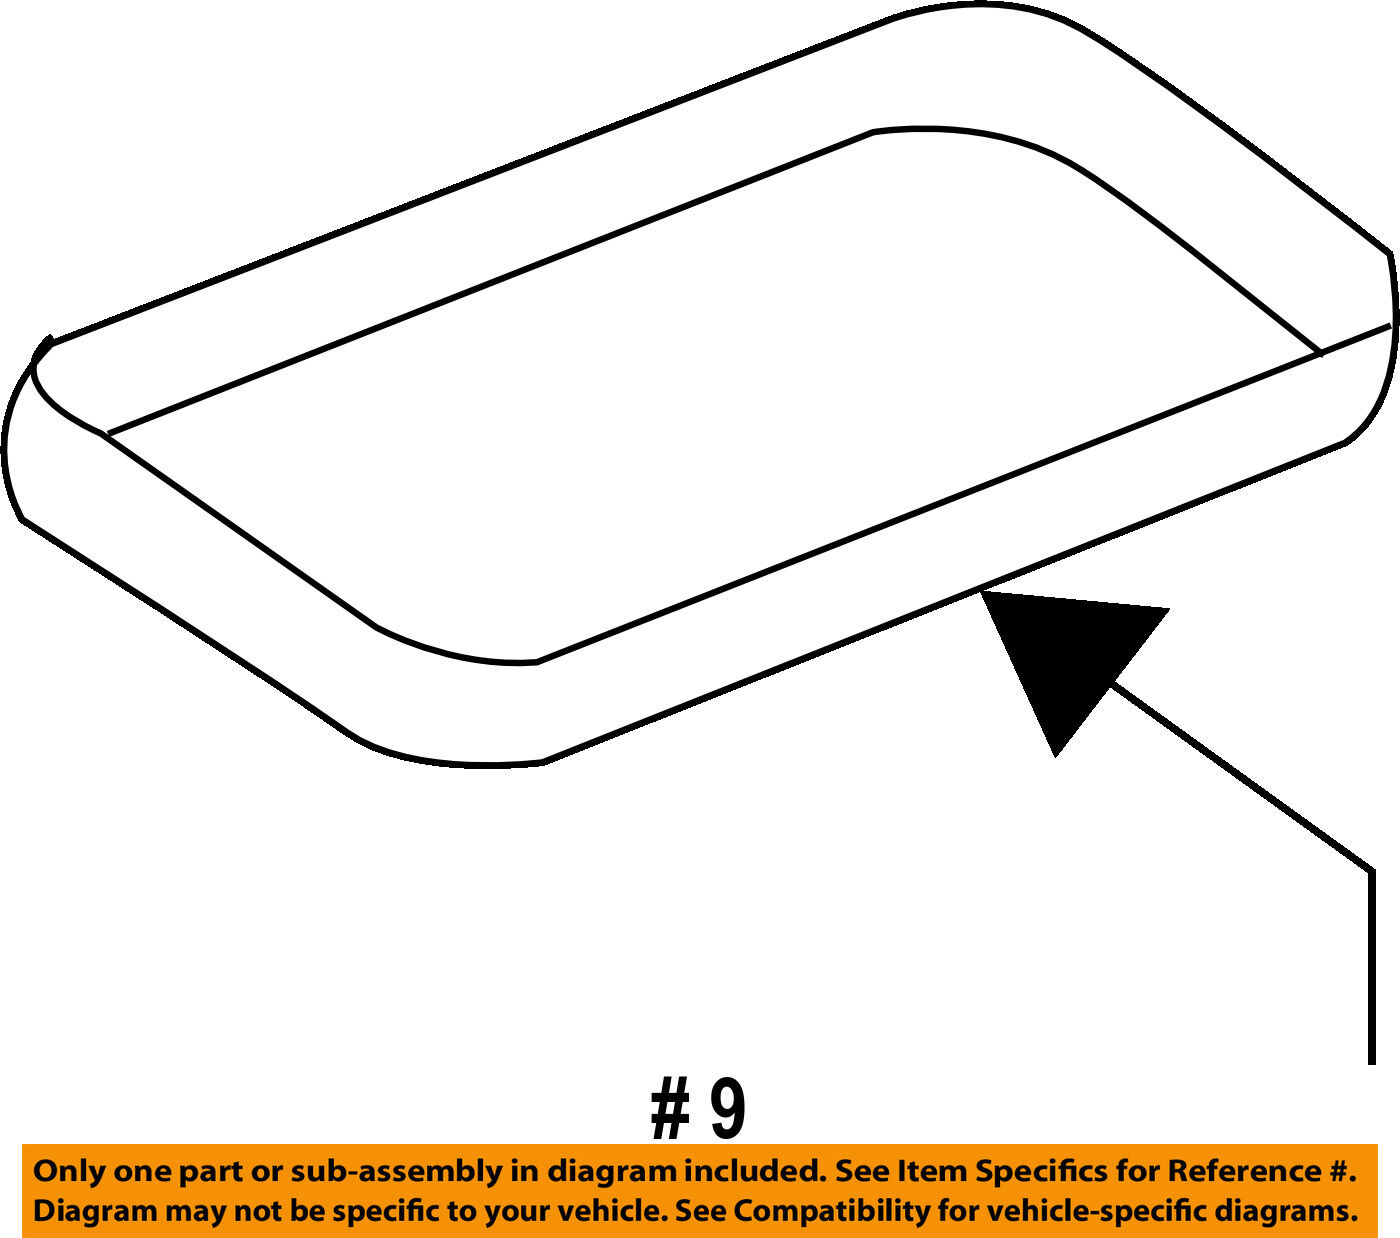 Ford Oem Engine Intake Manifold Gasket Aa5z9439a 1864 Picclick With Diagram 1 Of 2free Shipping